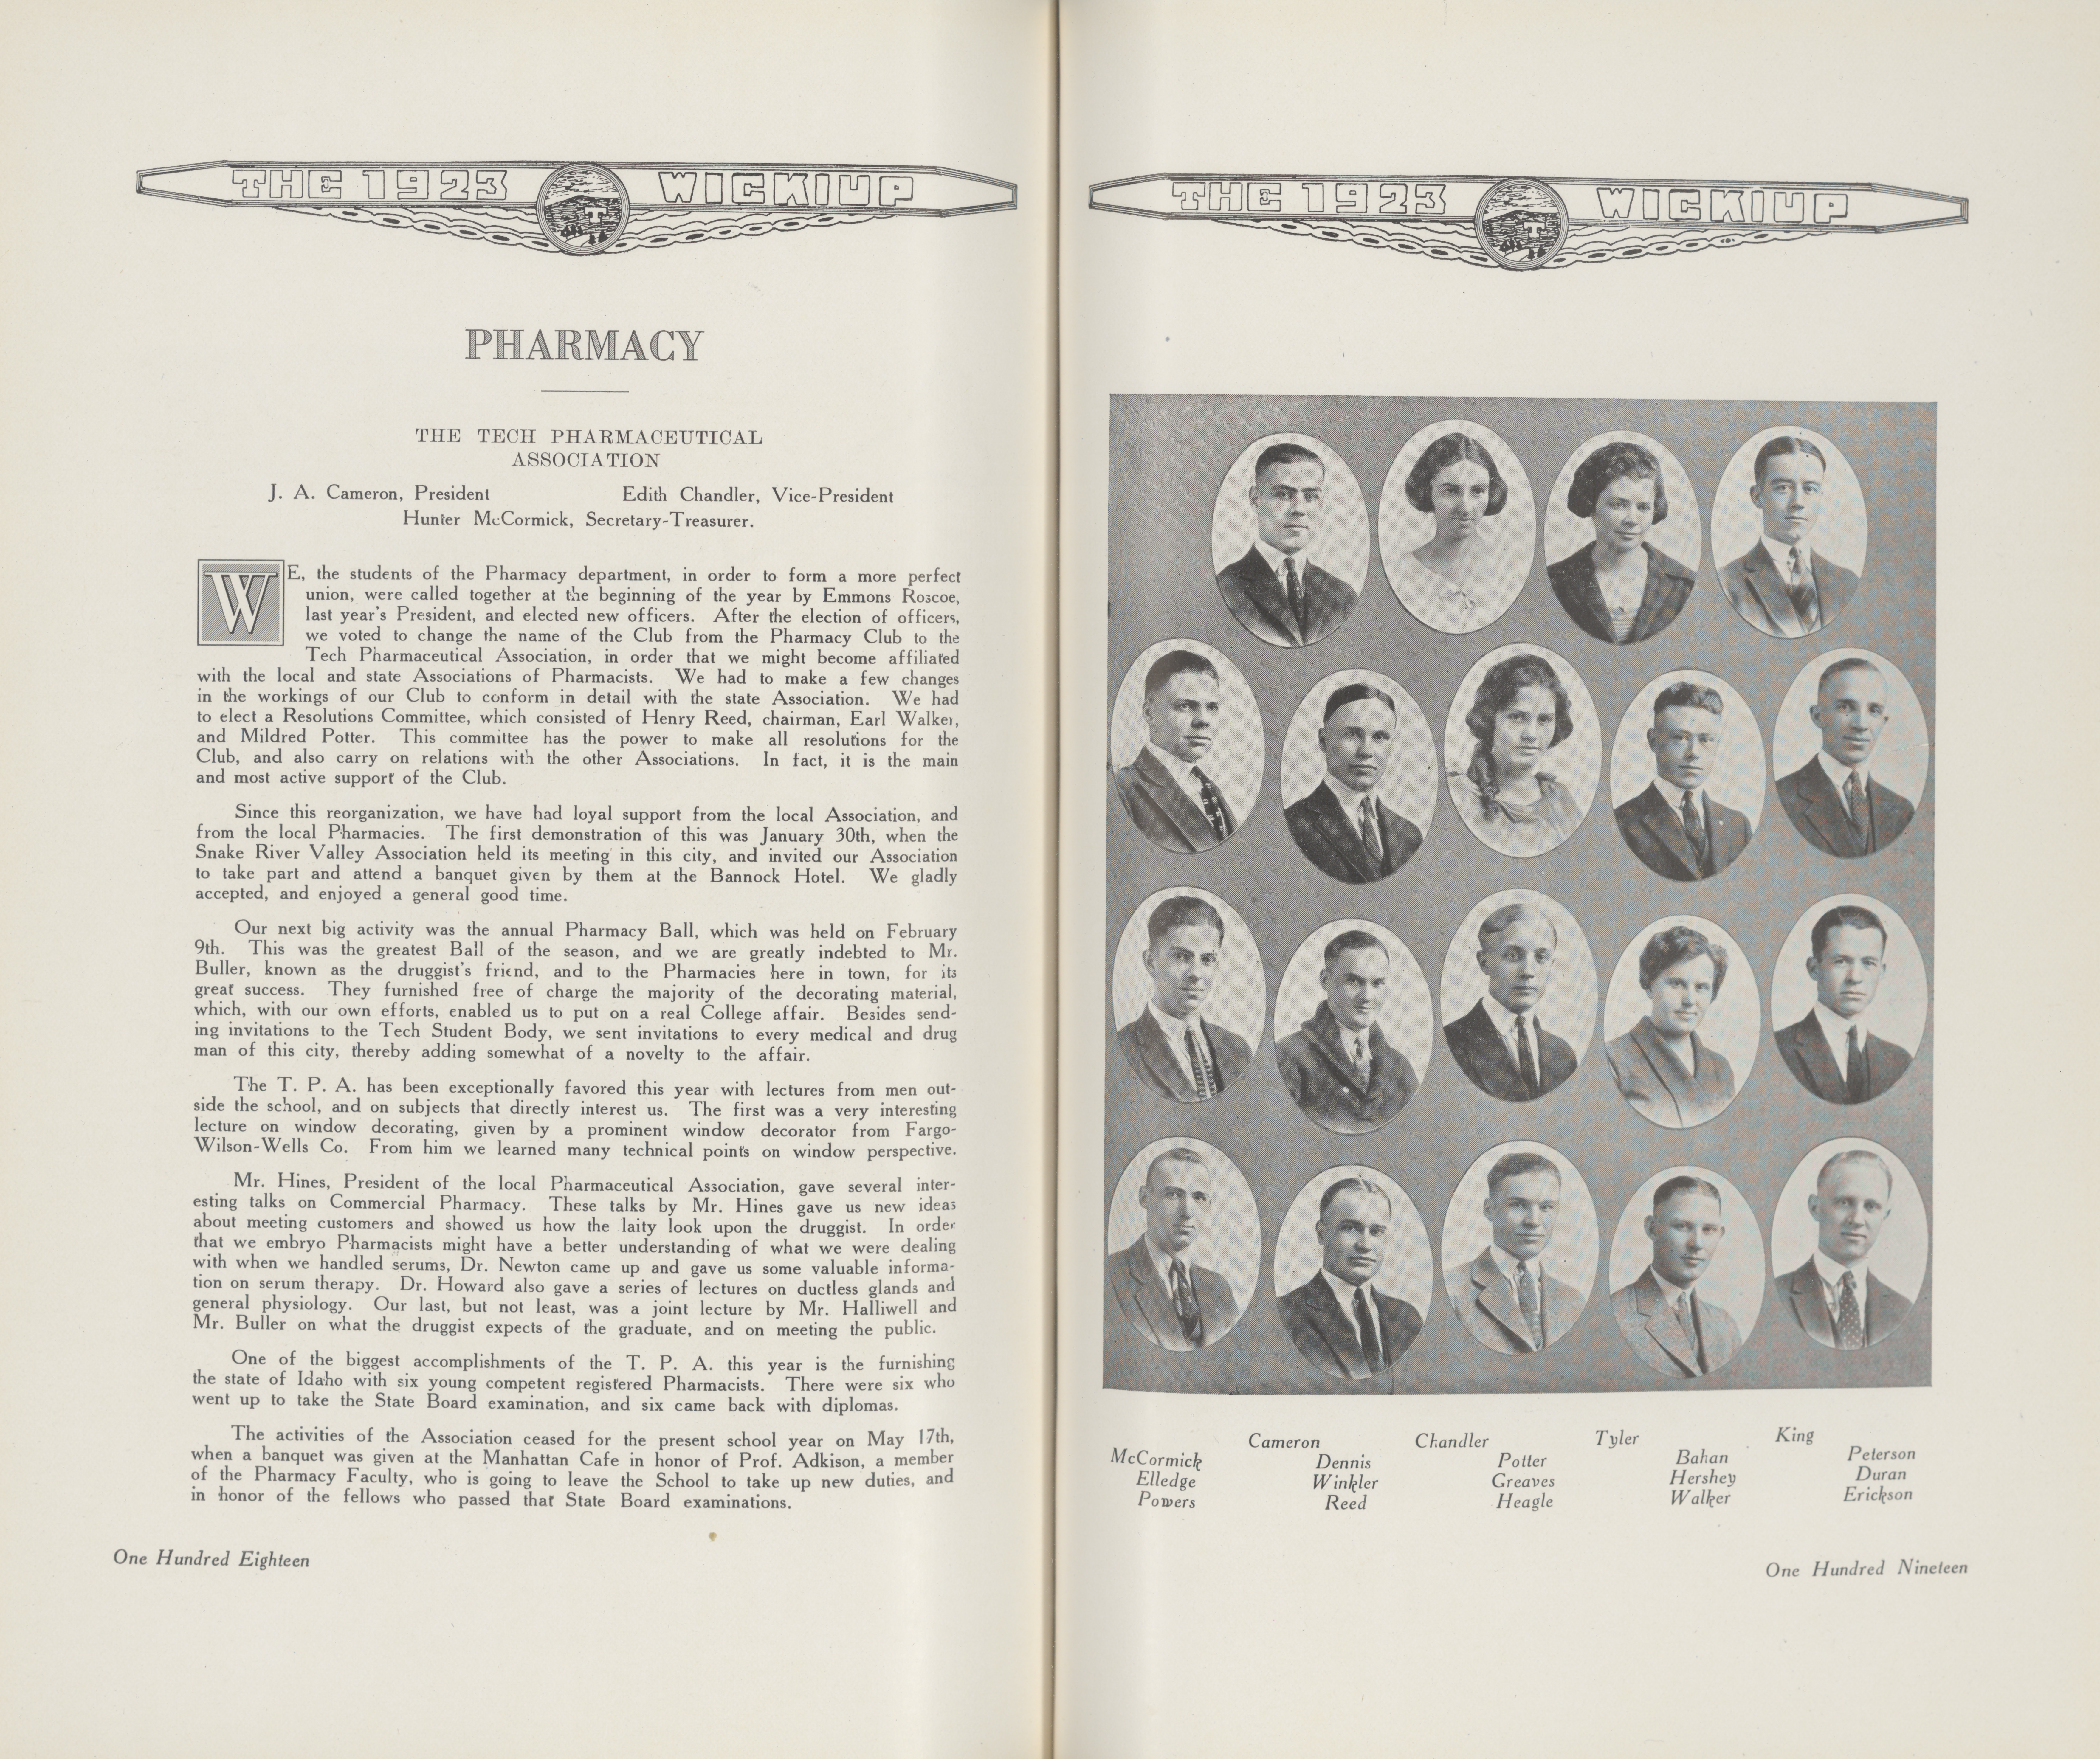 1923 Wickiup photo of pharmacy students